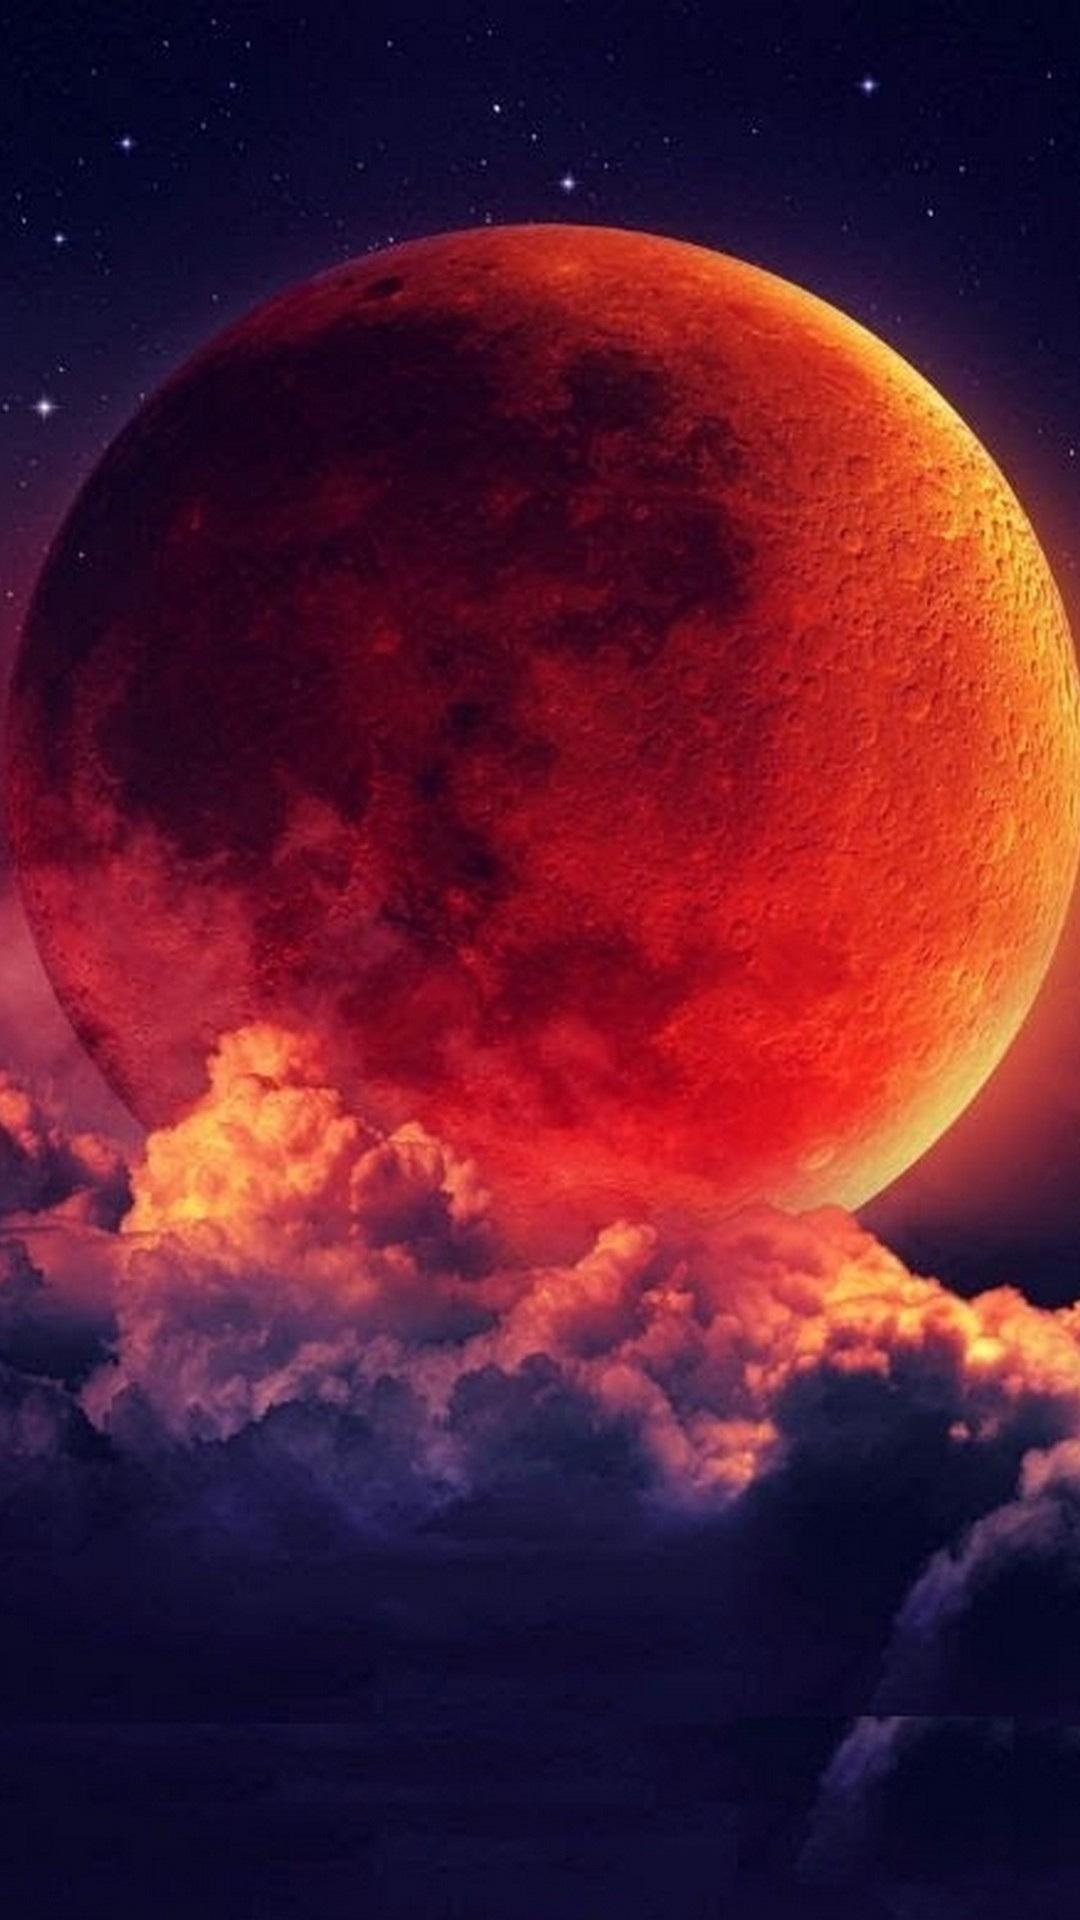 Blood Moon Wallpaper iPhone 2020 3D iPhone Wallpaper 1080x1920